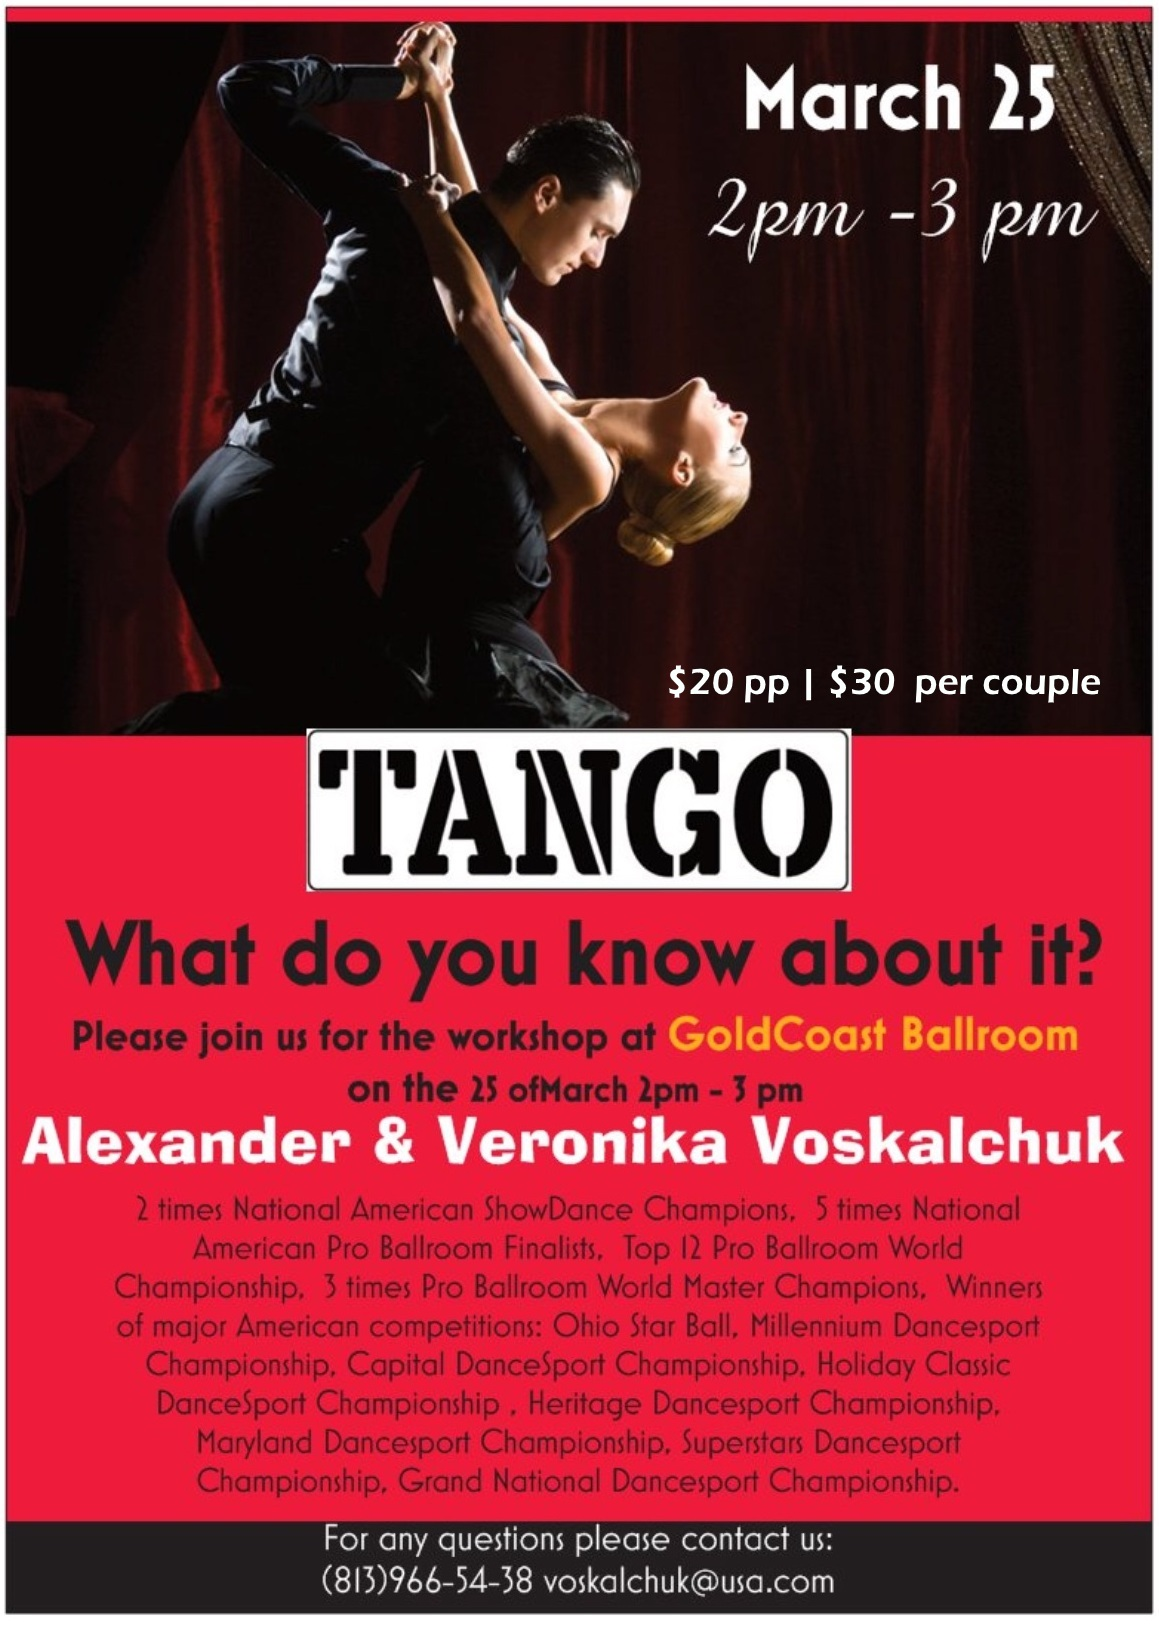 Alexander & Veronika Voskalchuk - Master Tango Workshop - March 25, 2018 - 2 pm - 3 pm